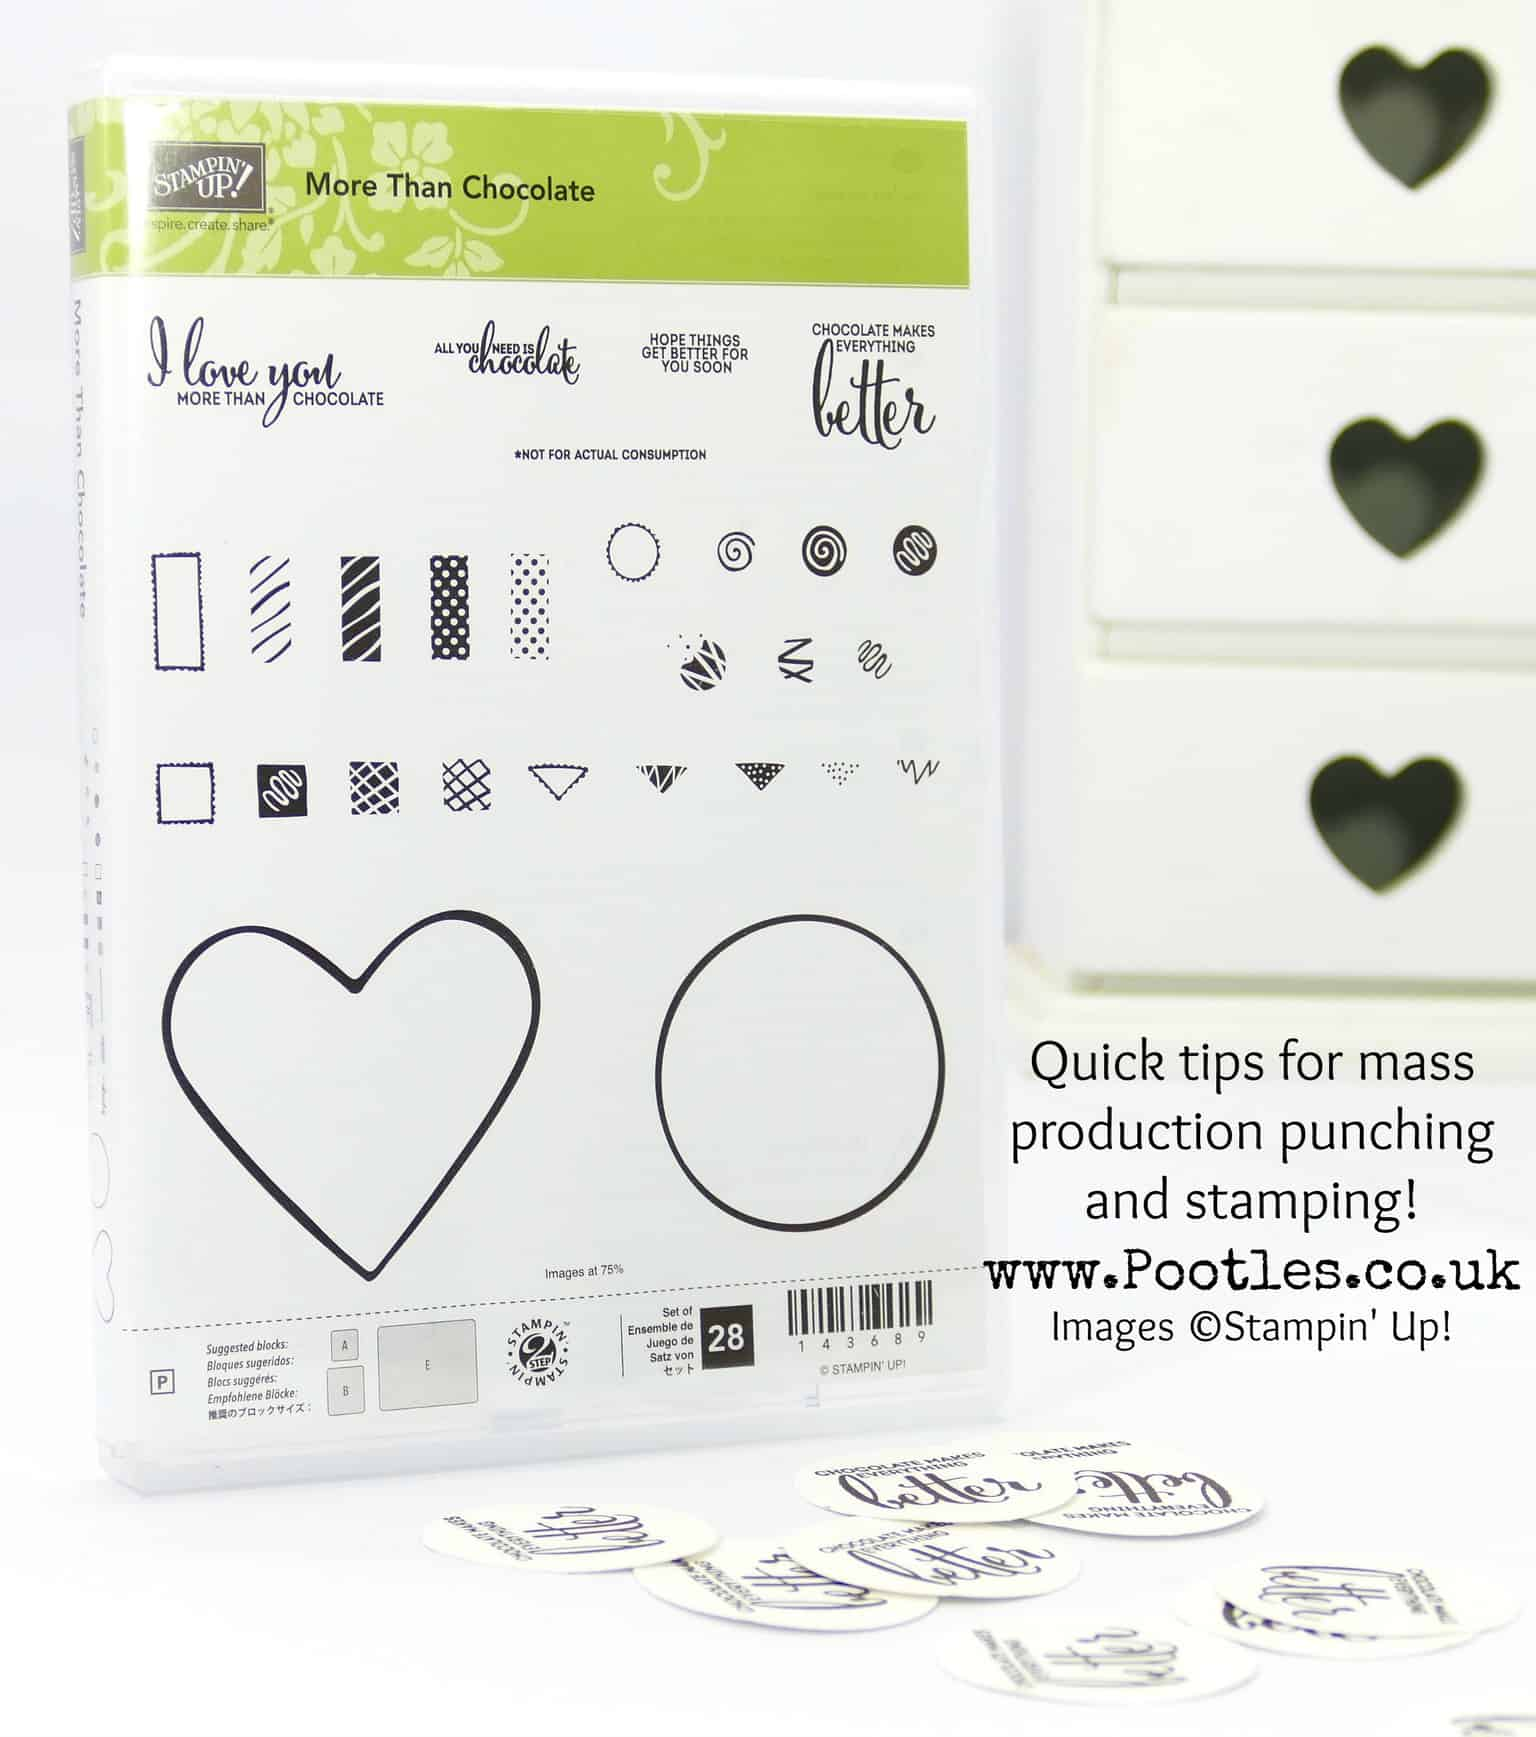 Stampin' Up! Pootles Tips Choosing a Block & Quick Mass Production Crafting